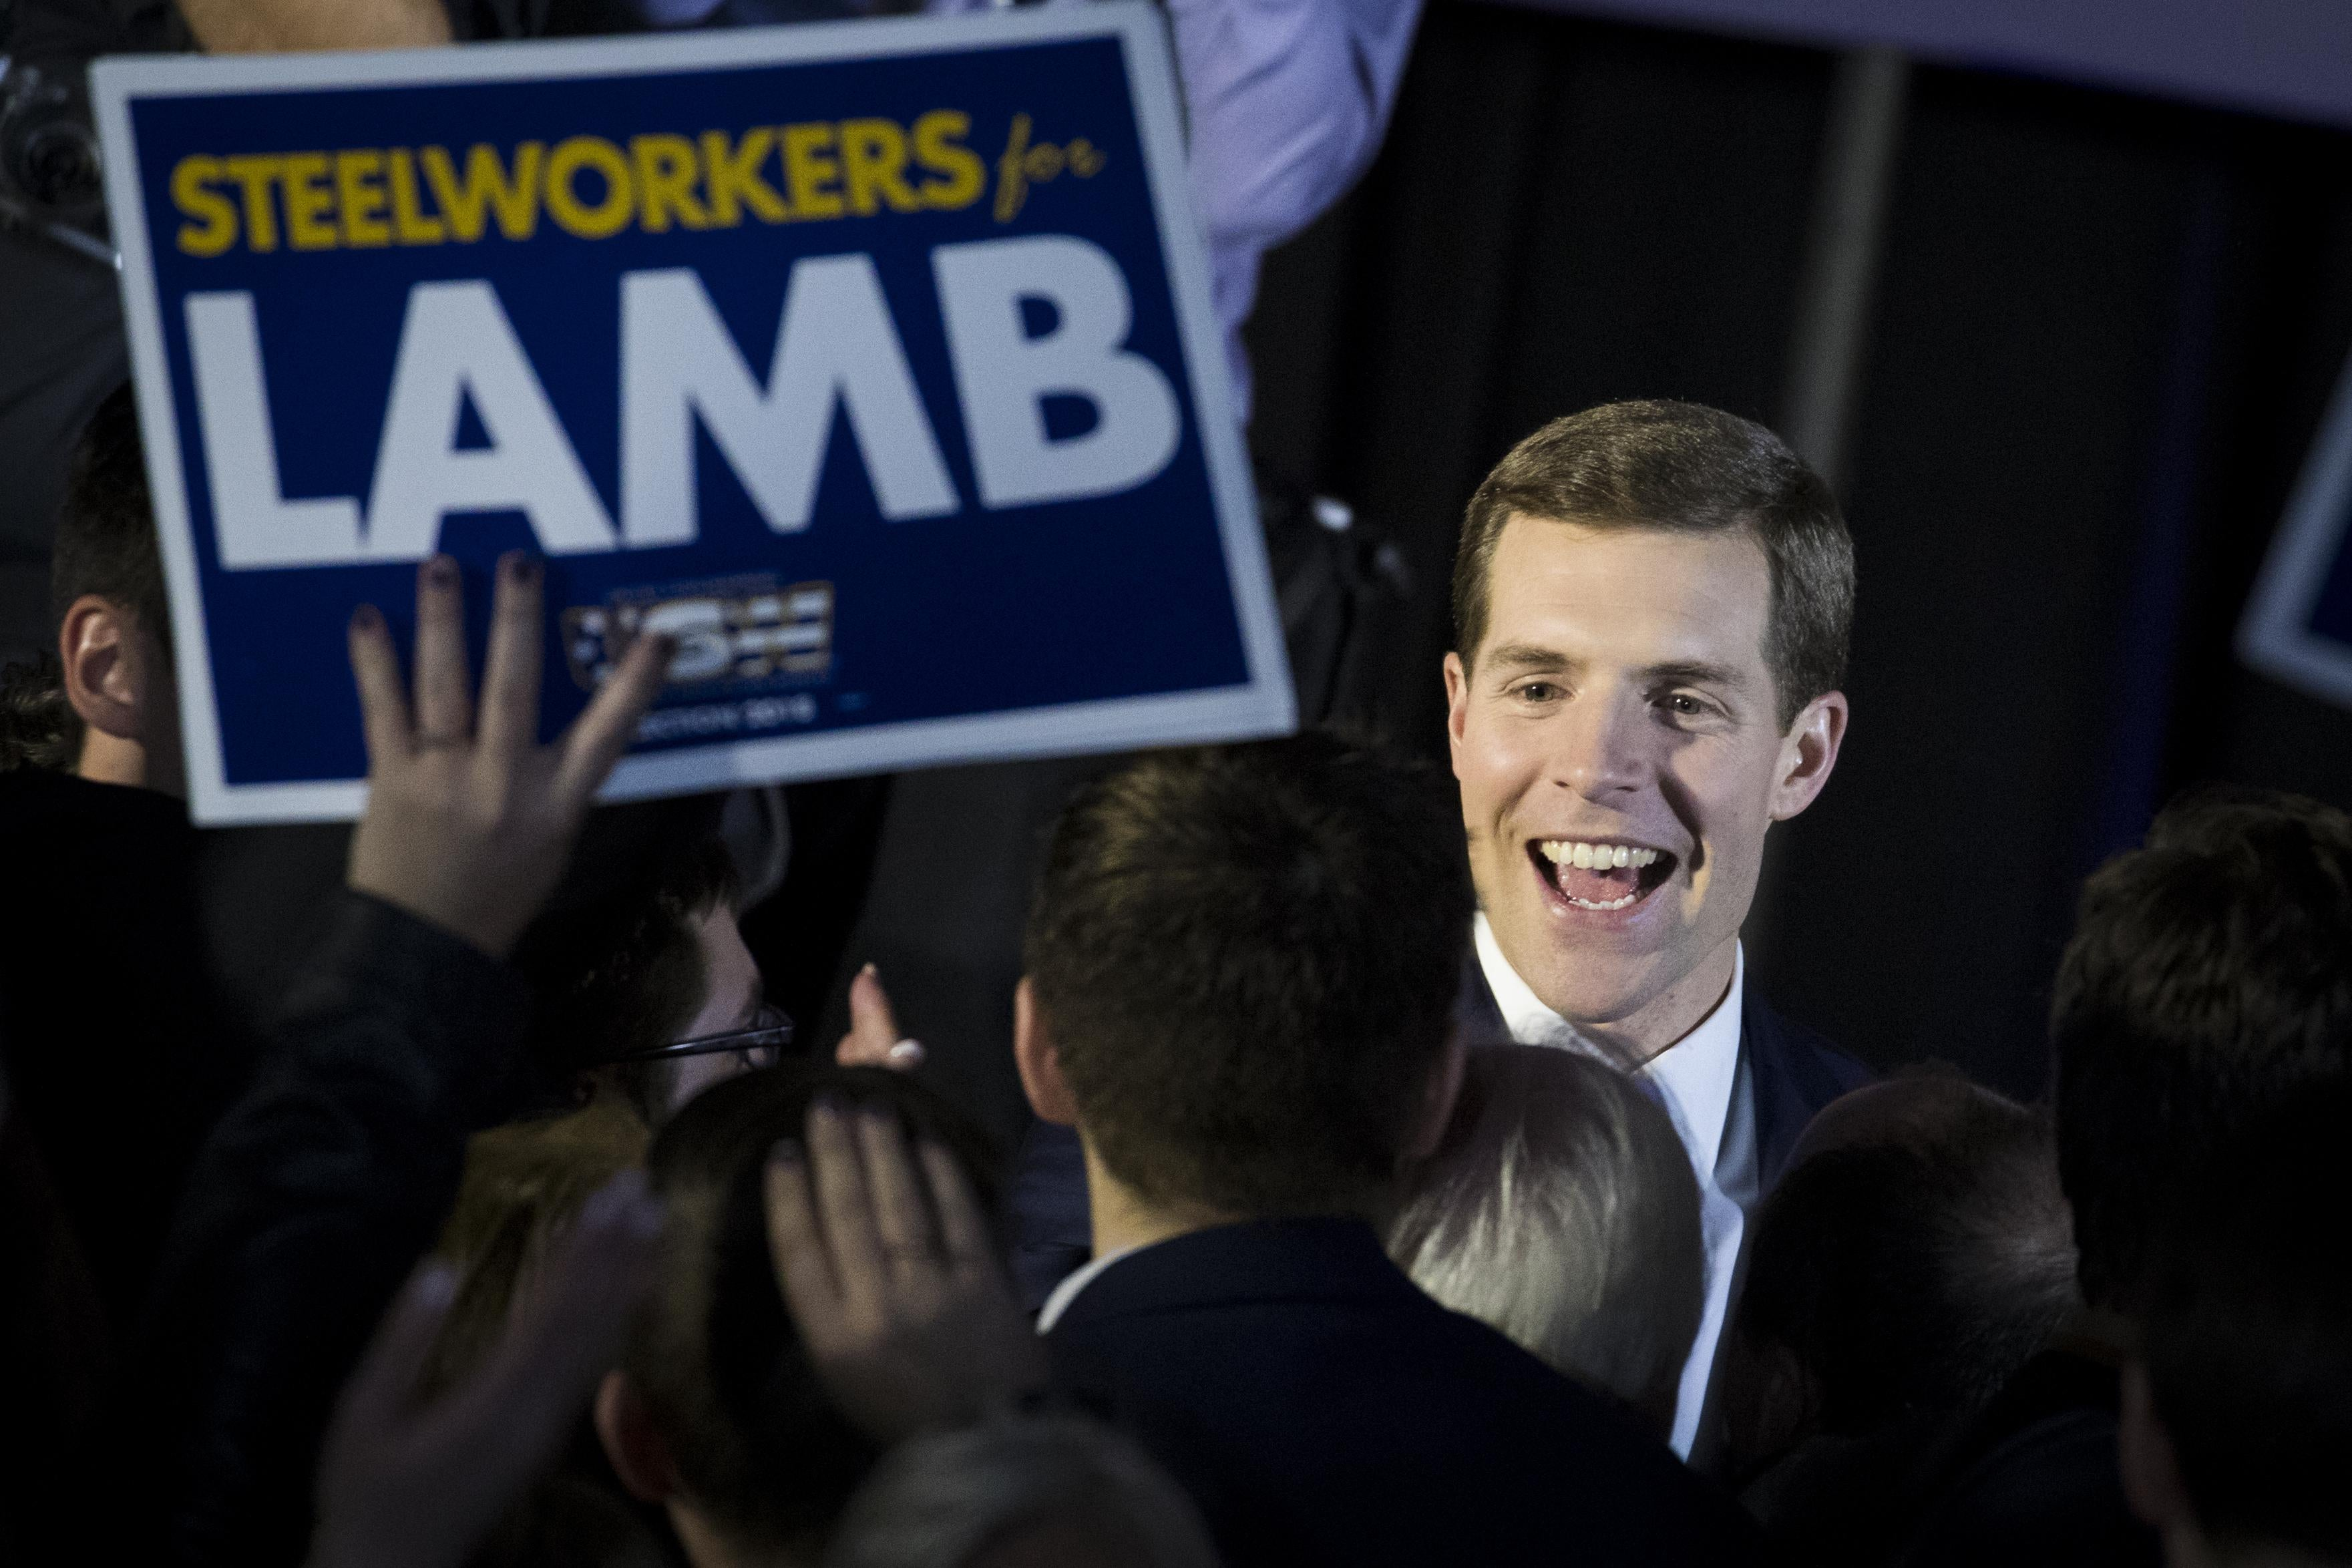 Conor Lamb greets supporters at an election night rally in March.